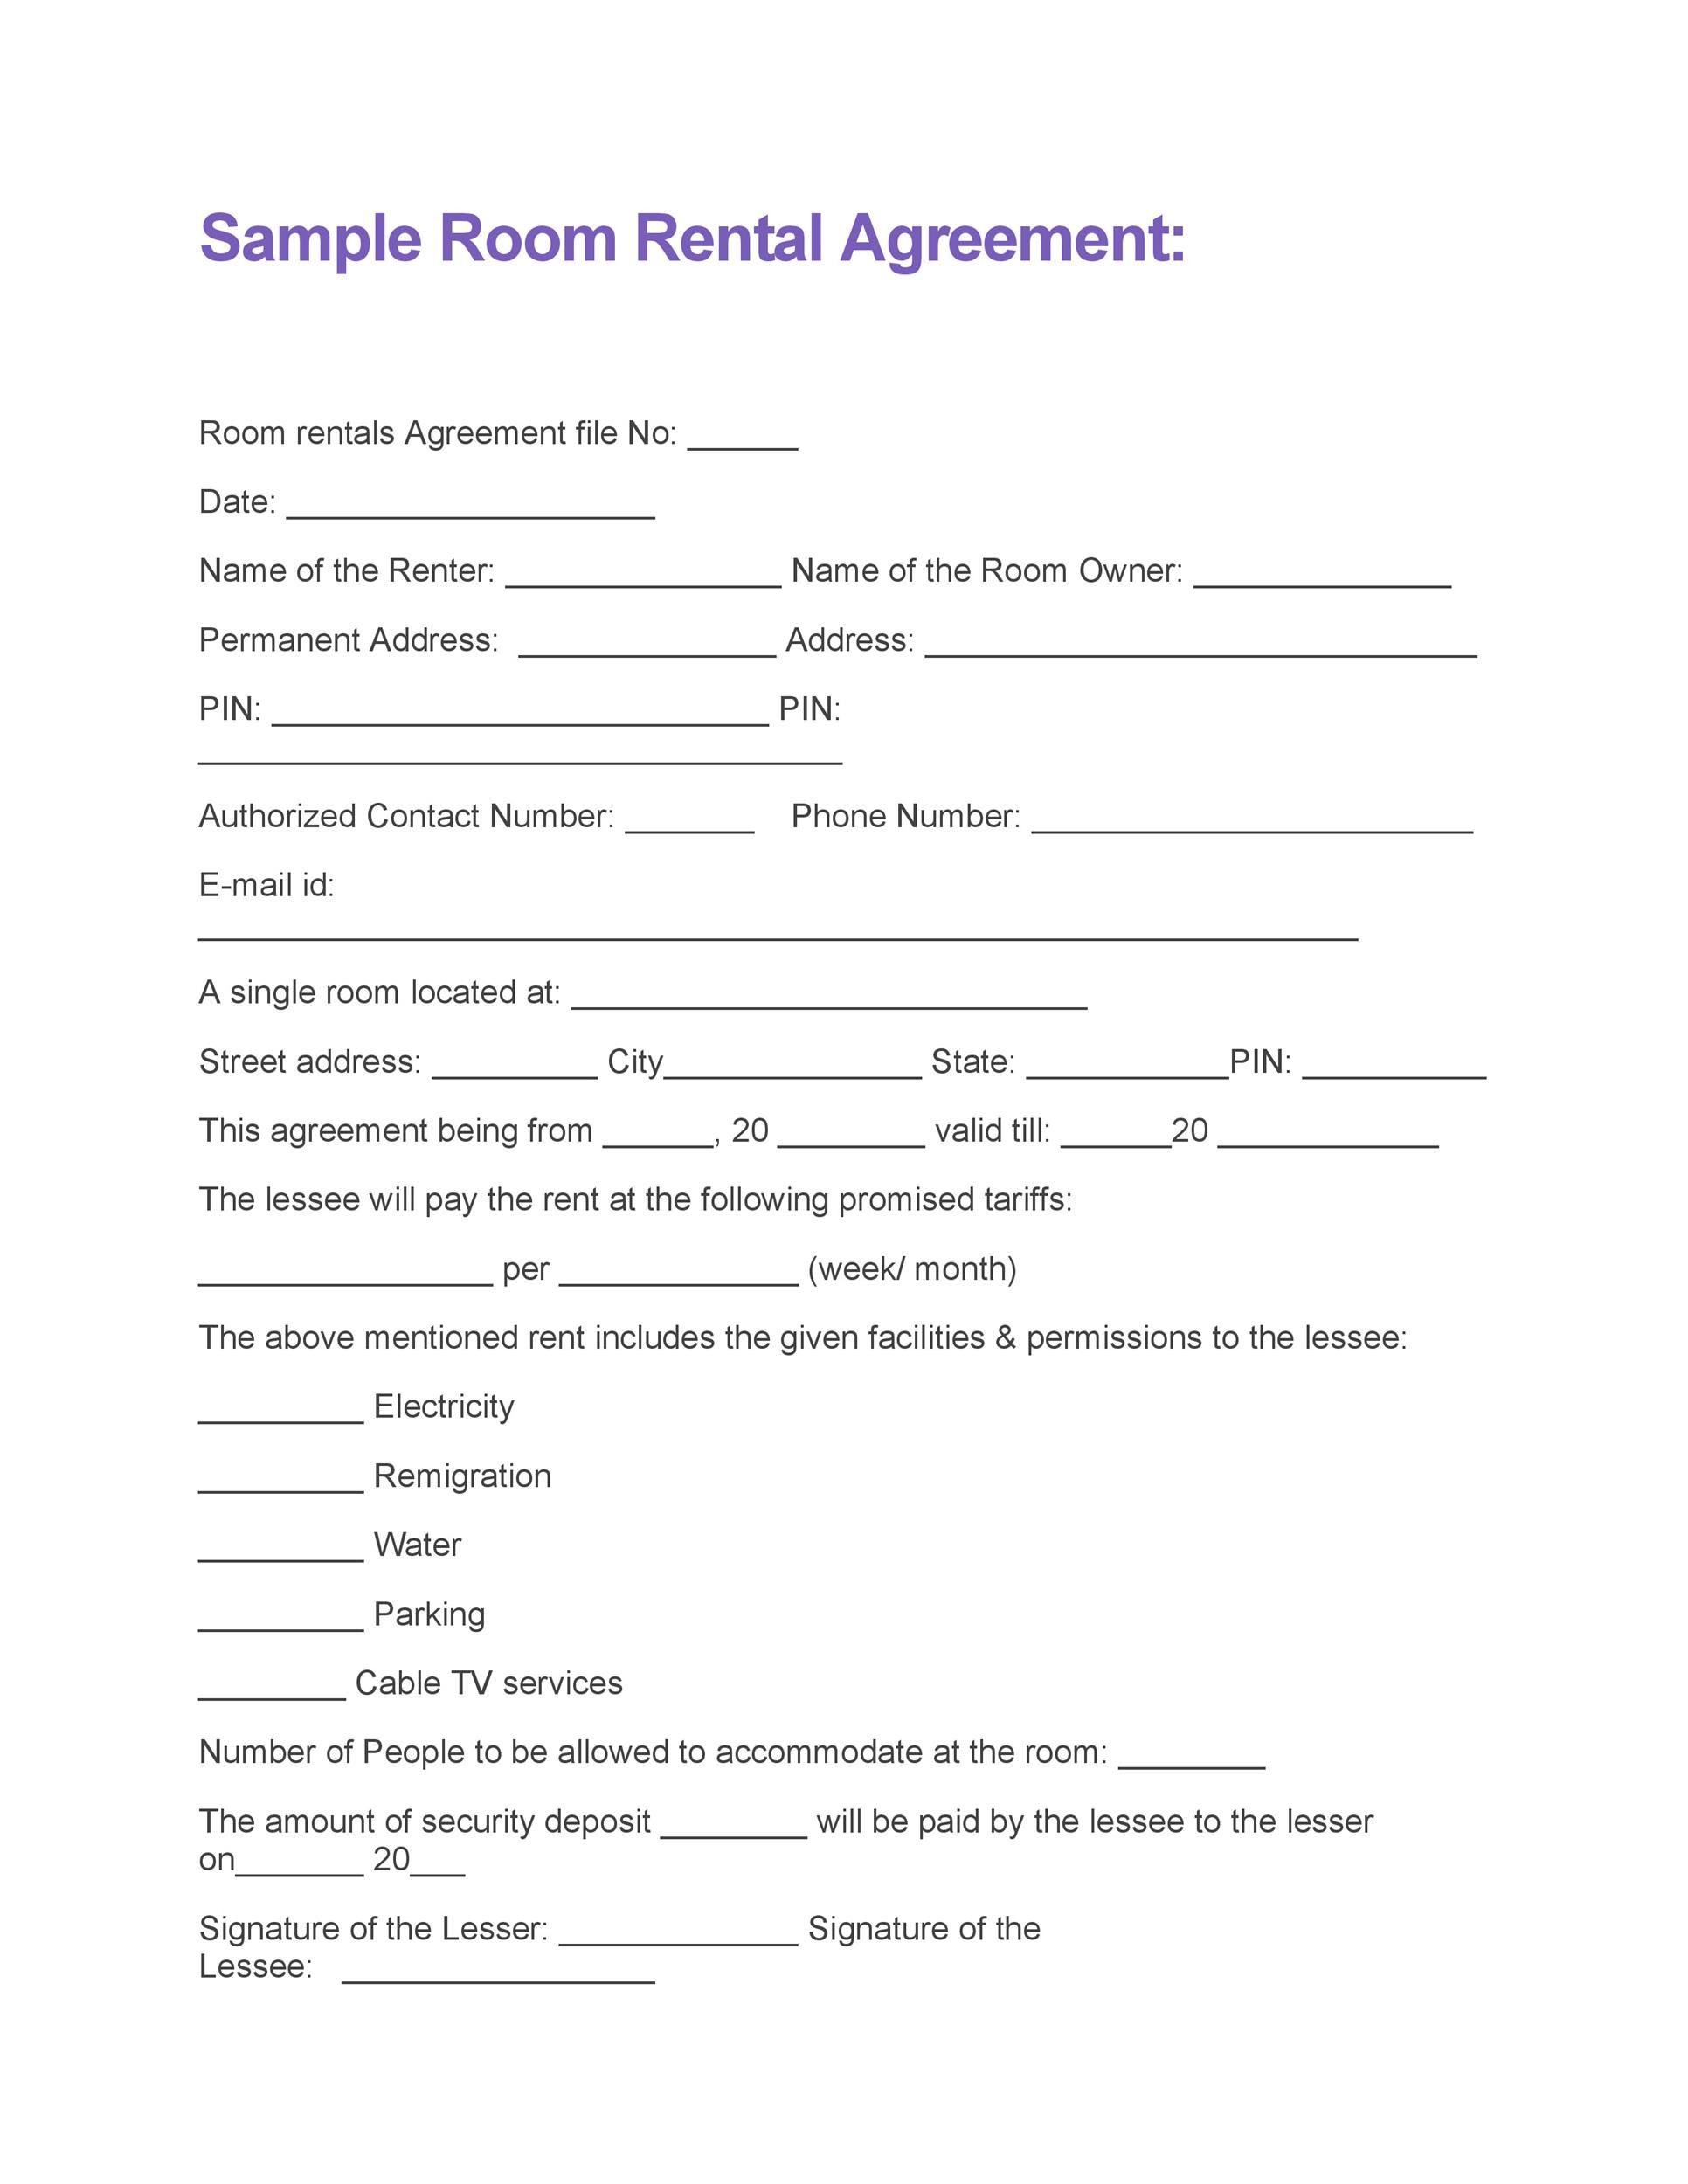 Sample Lease Application. Rental Application Template 42 42 Rental